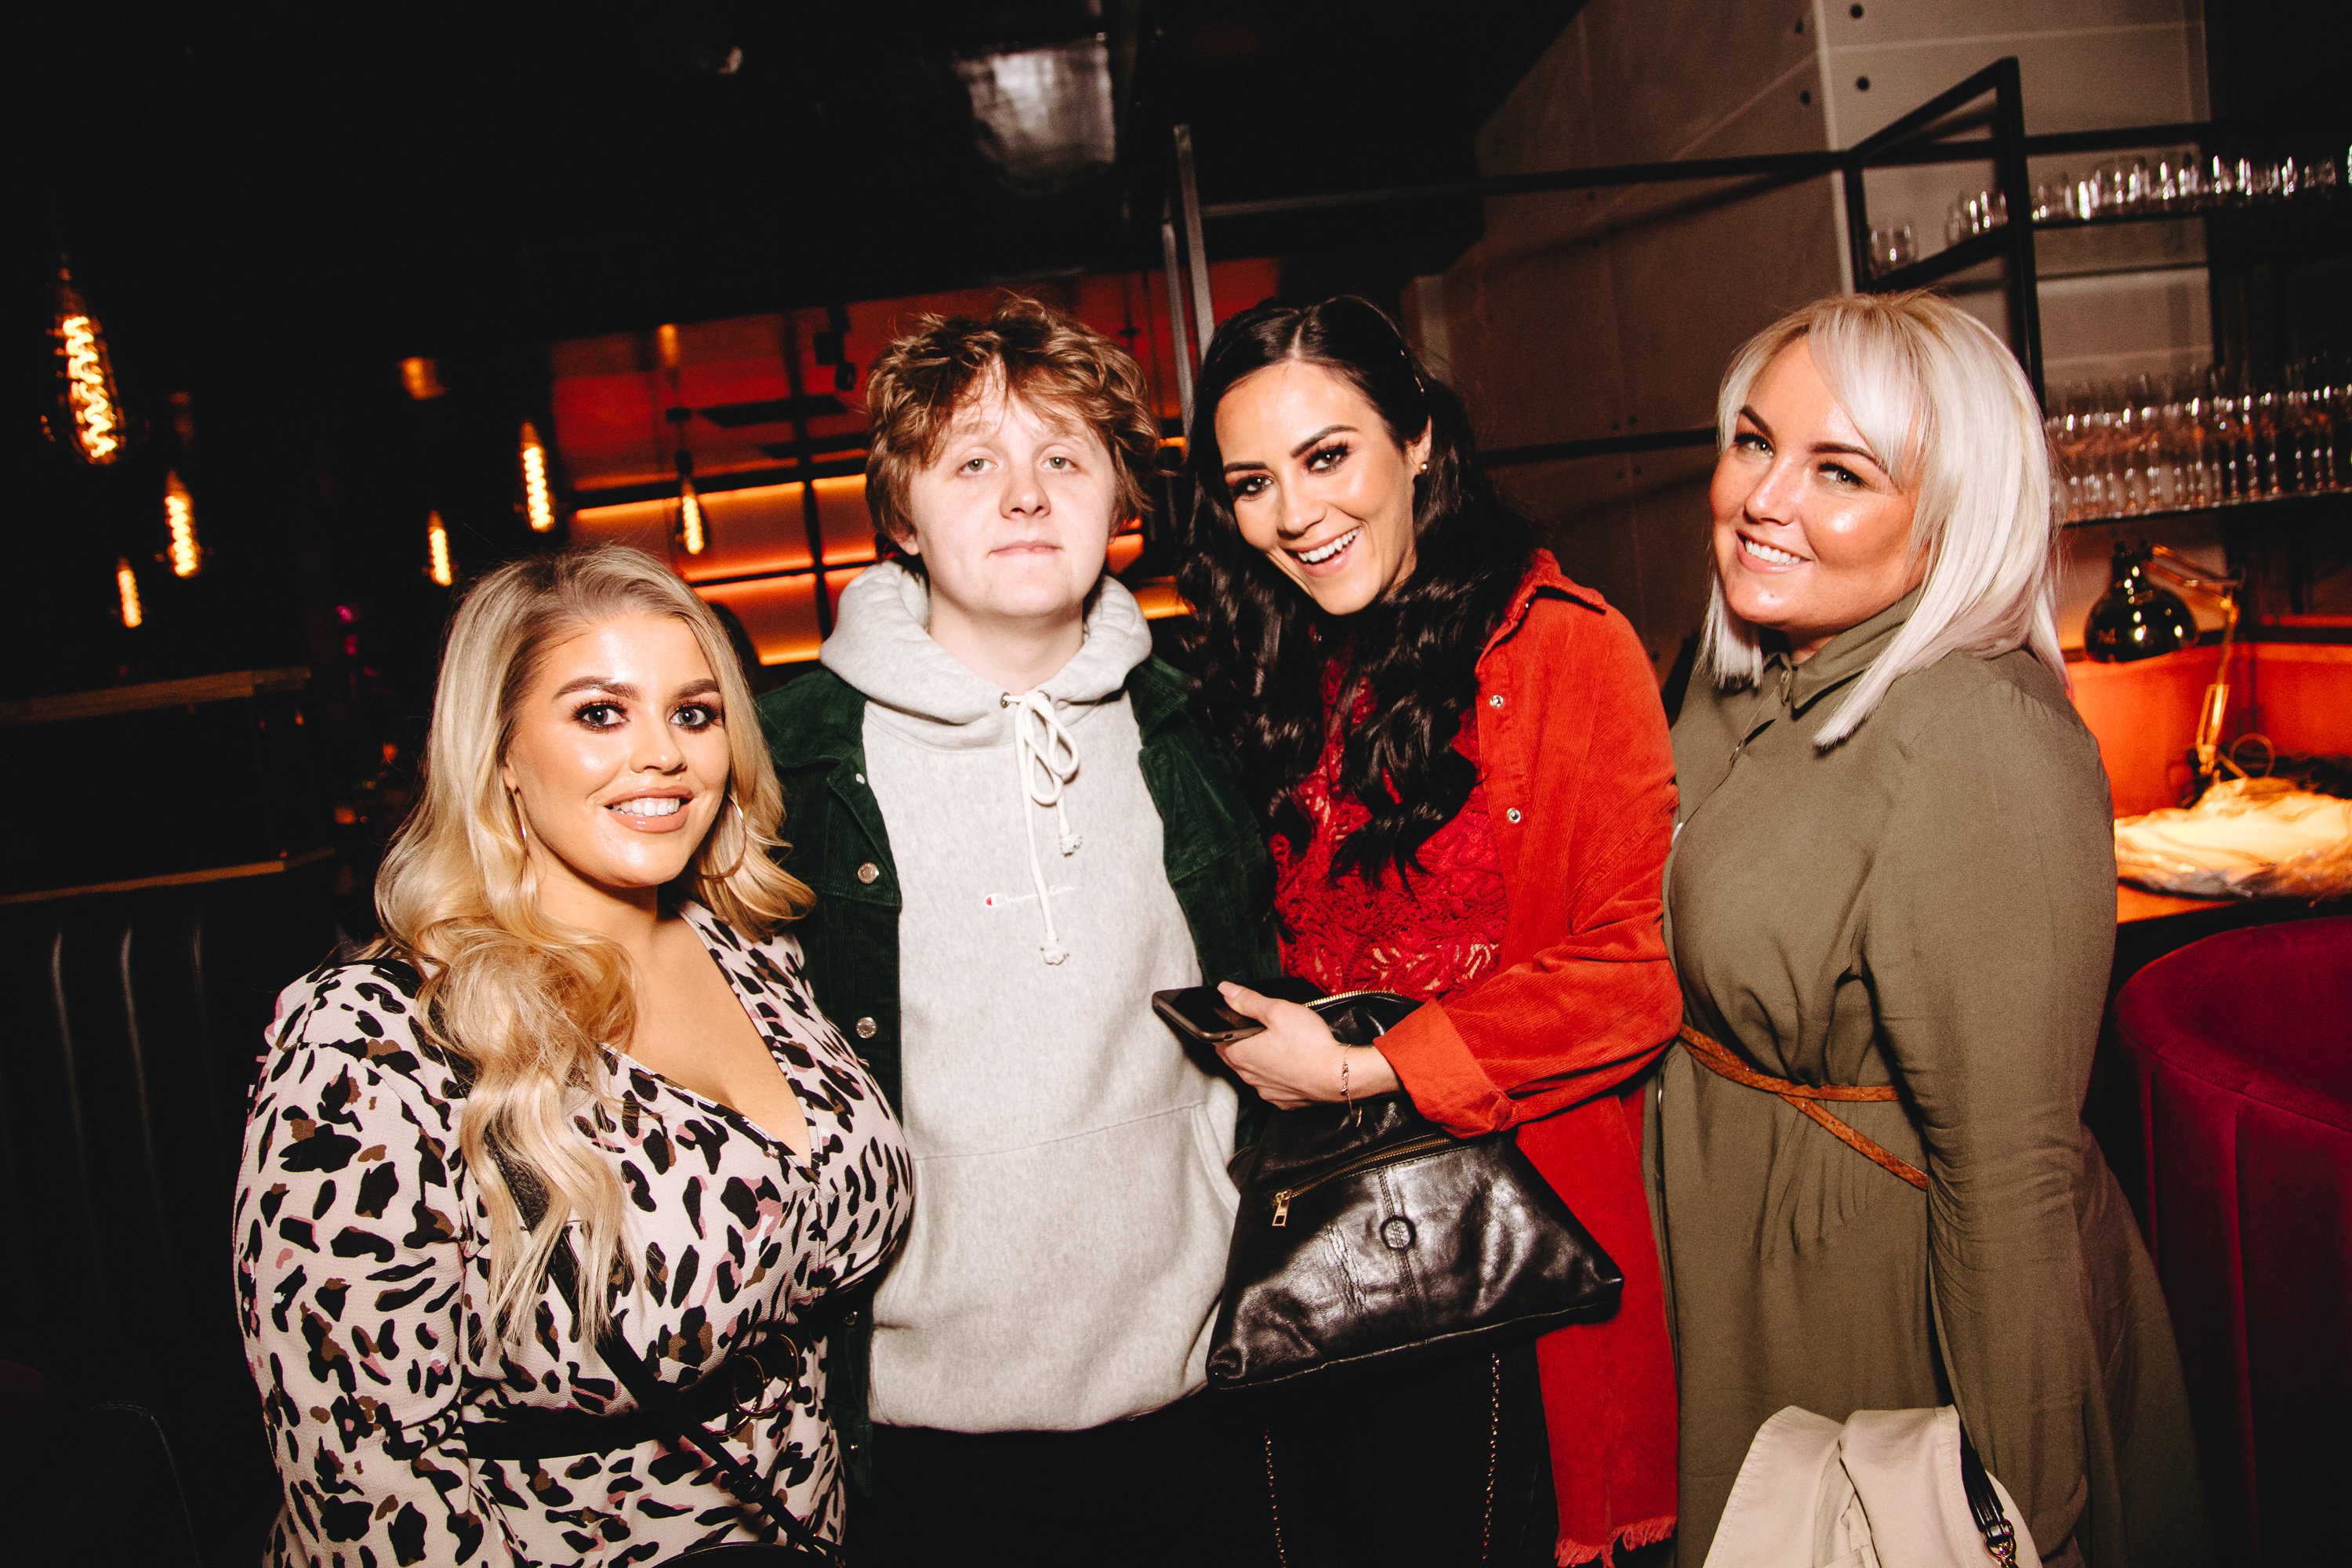 Lewis Capaldi has been providing the people with plenty of entertainment of late. Credit: SWNS